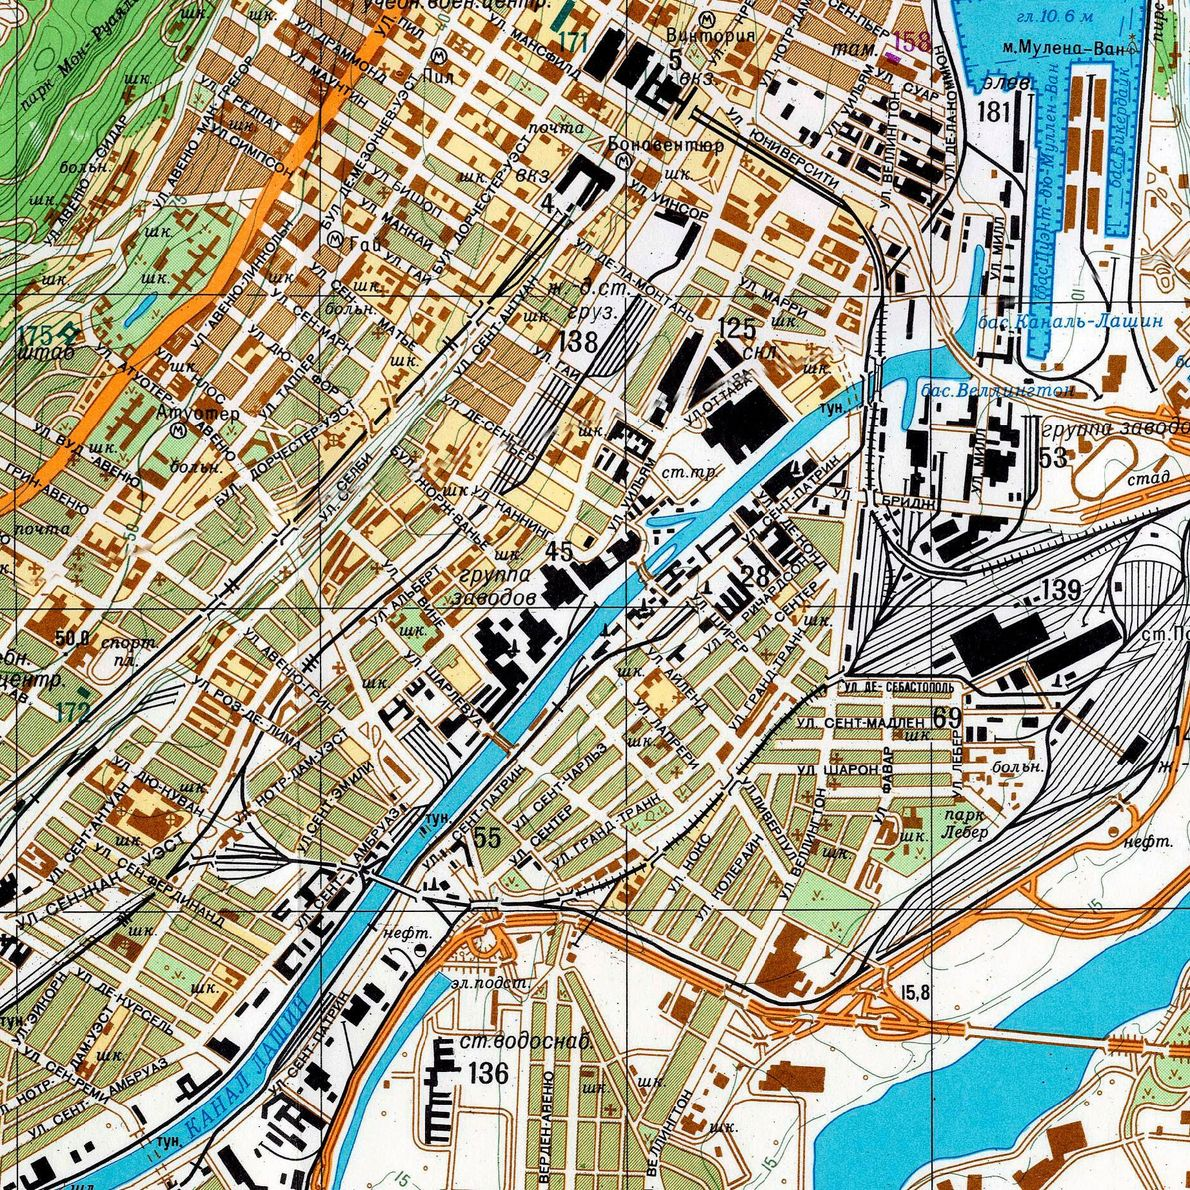 Montreal is shown in greater detail on this large-scale Soviet map printed in 1986.